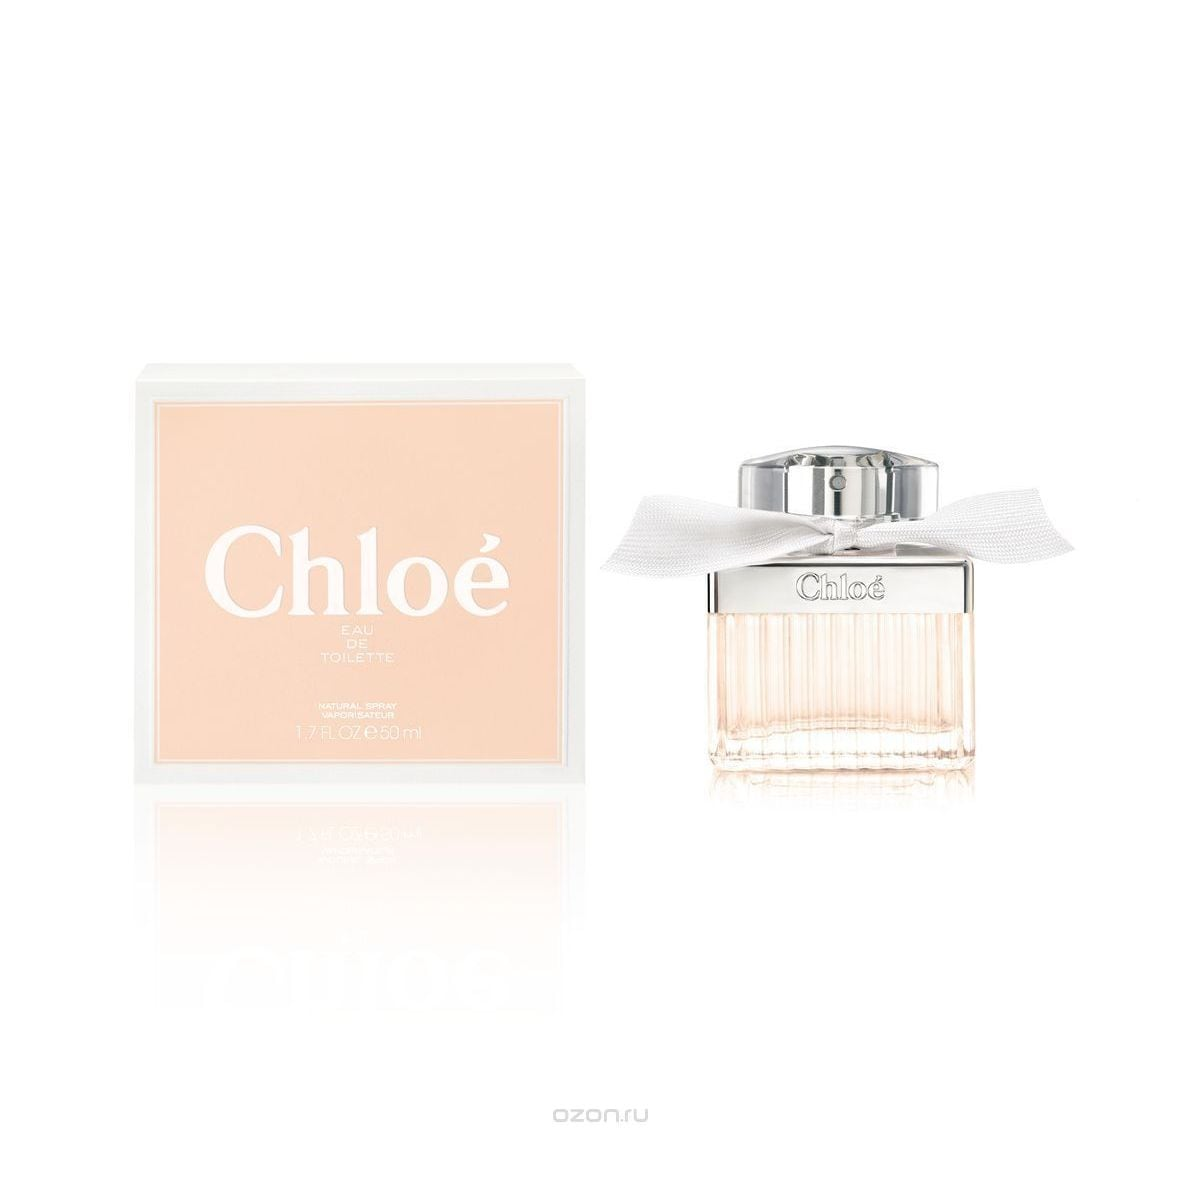 Chloe Eau Chloe Signature Women S 1 7 Ounce Eau De Toilette Spray